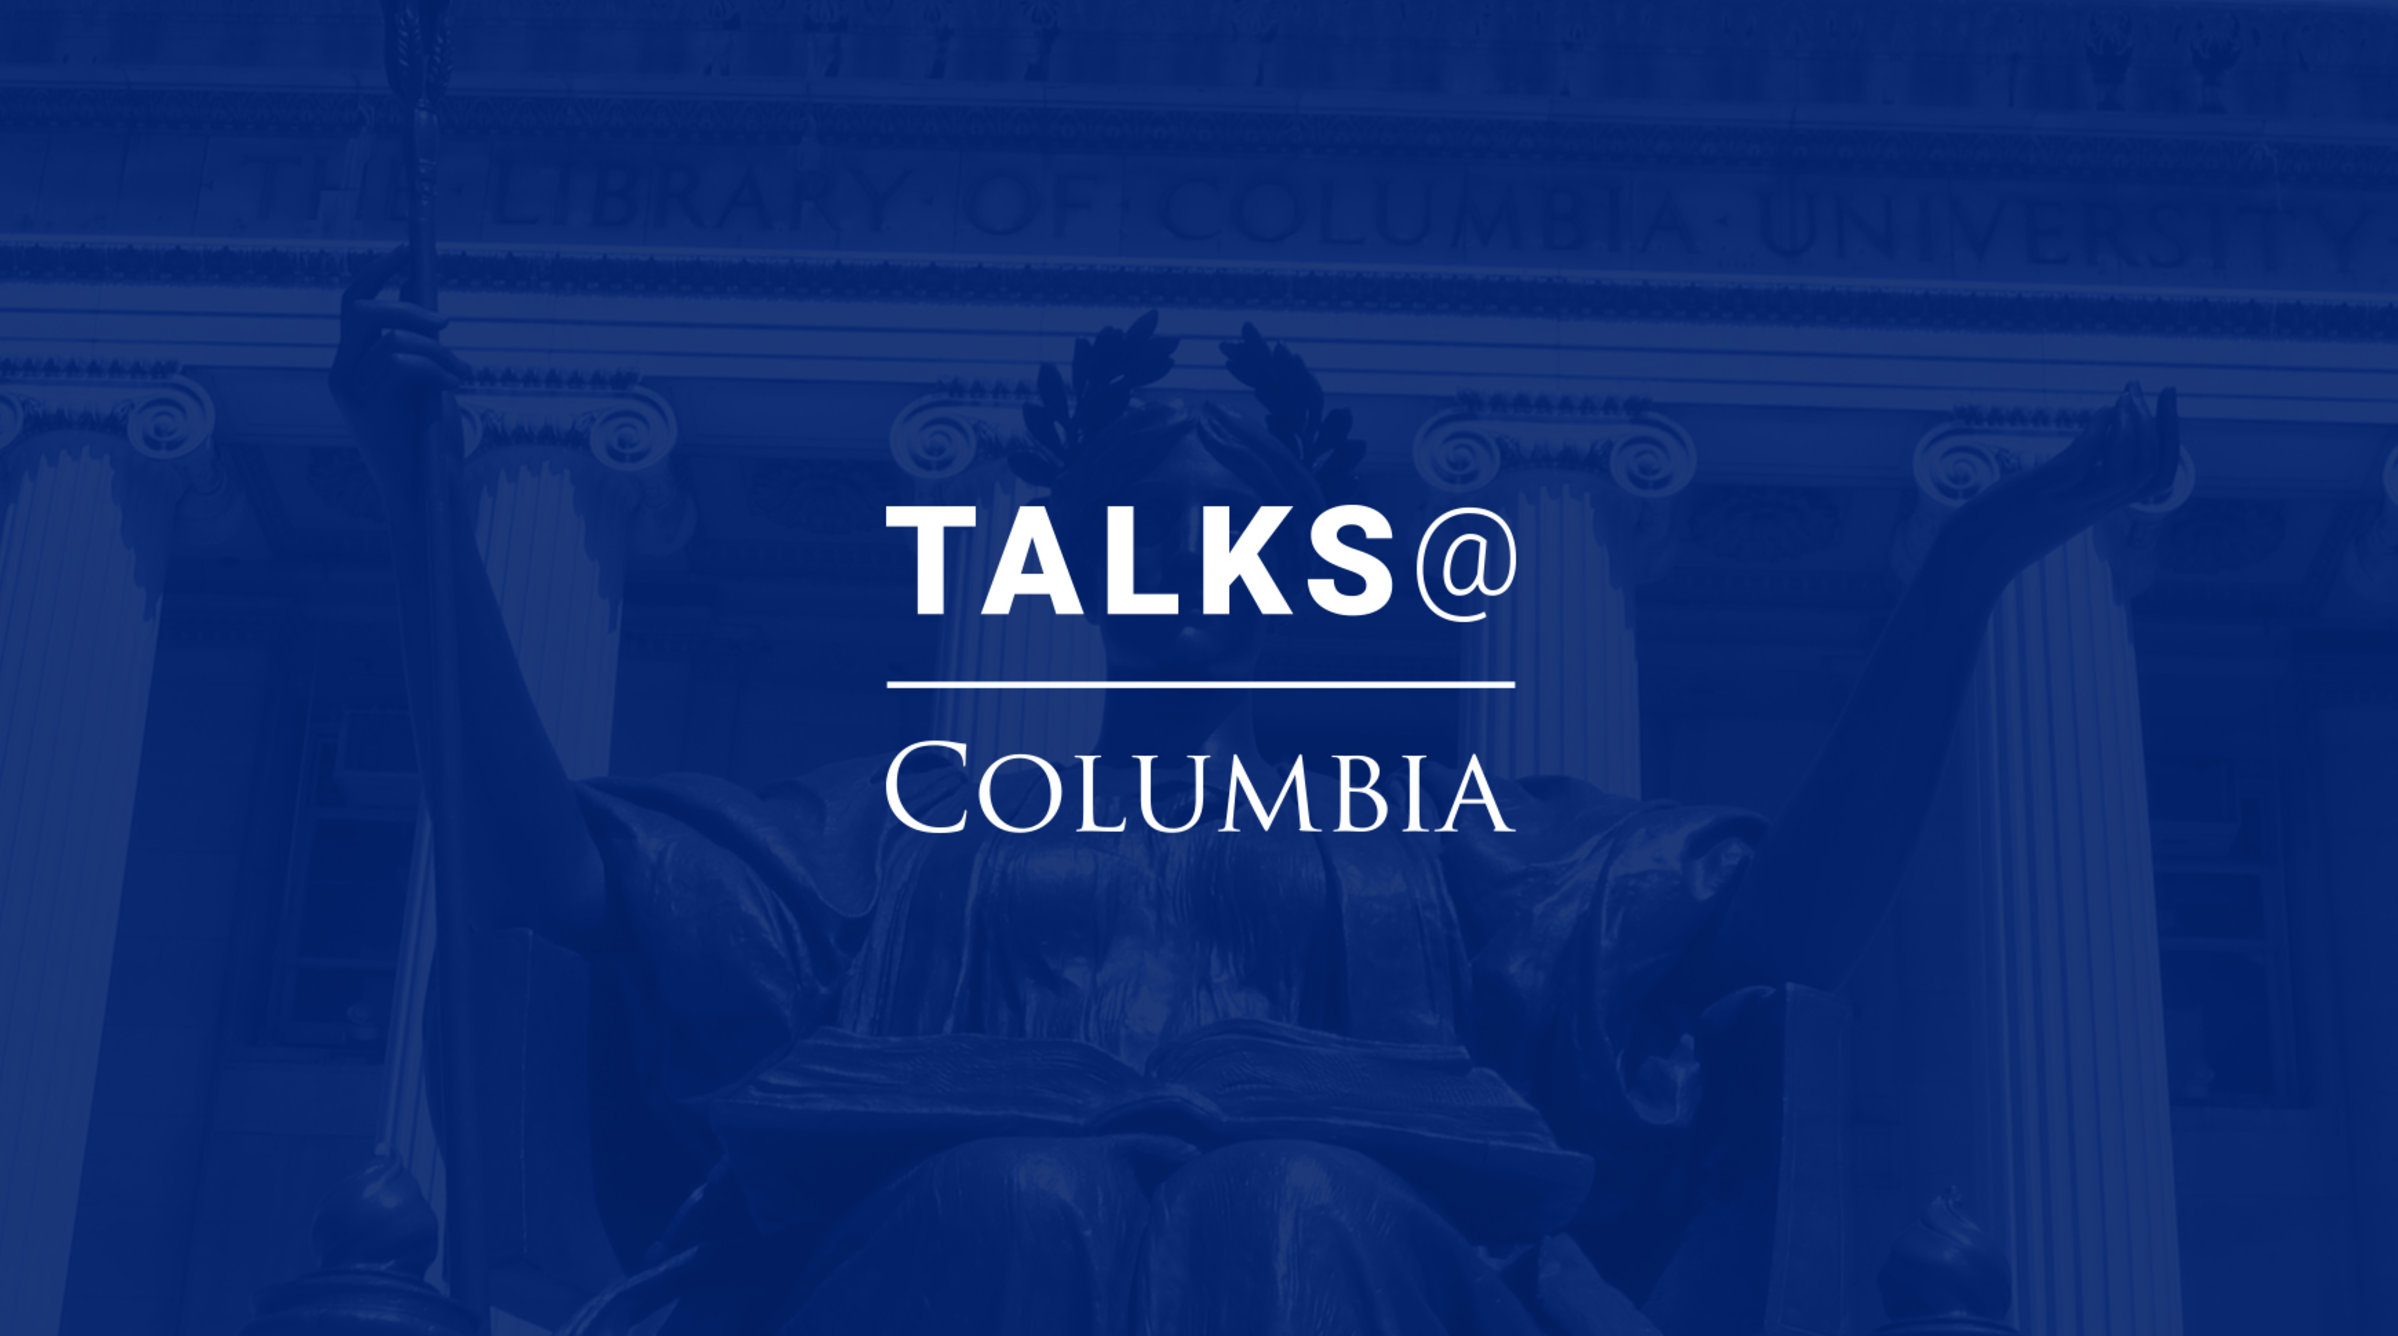 talks at Columbia